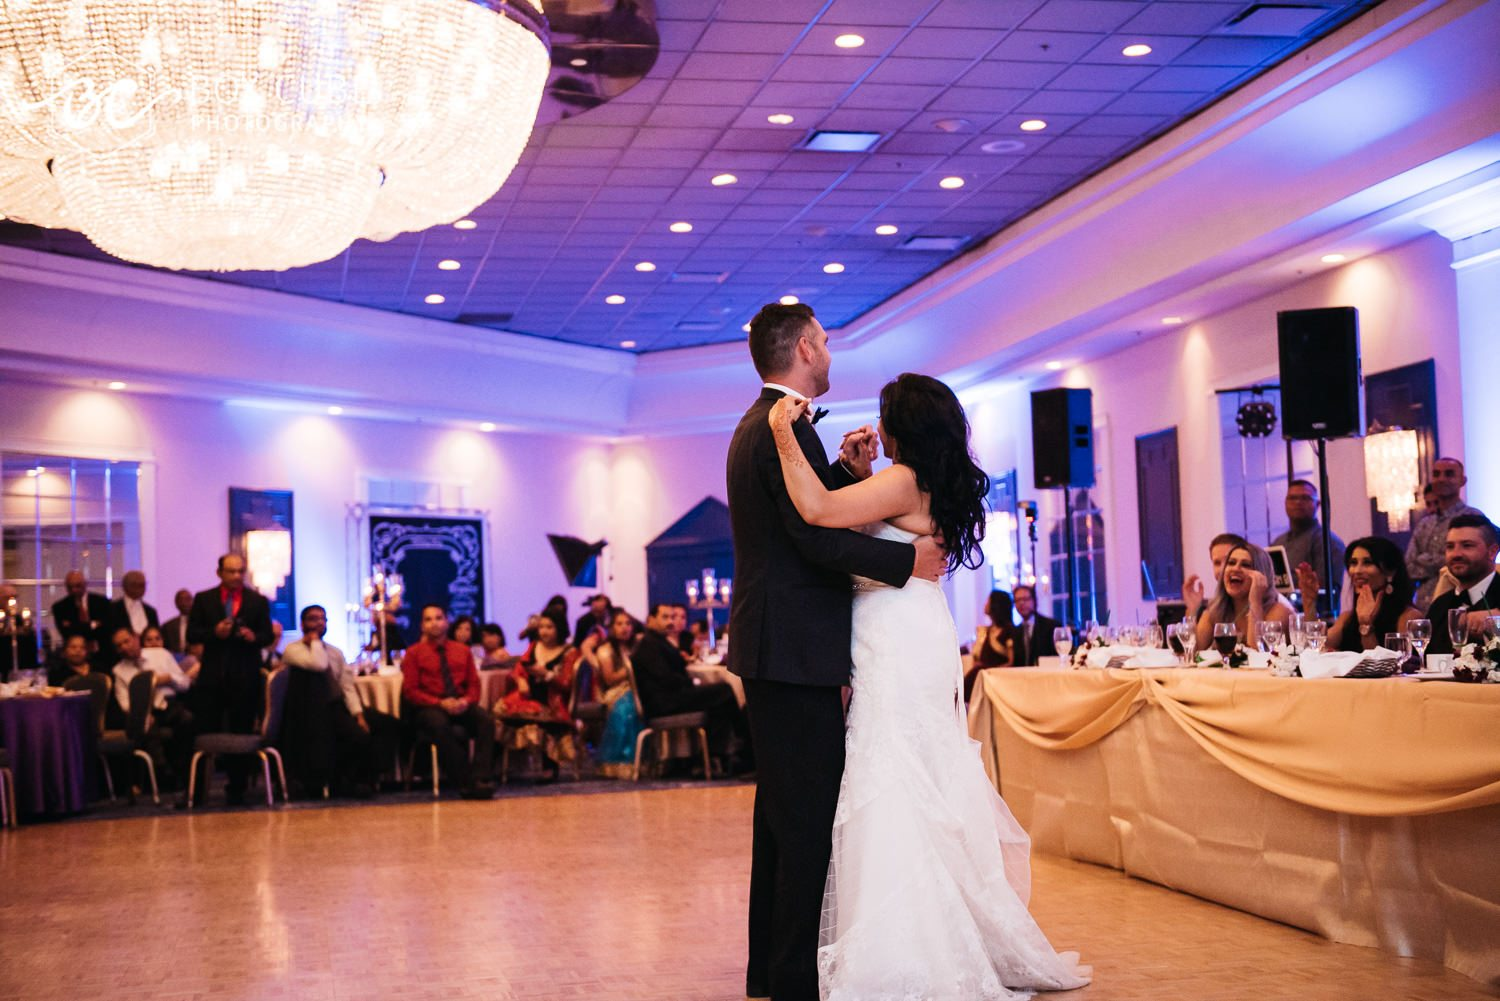 edmonton wedding photo ballroom chandelier photo